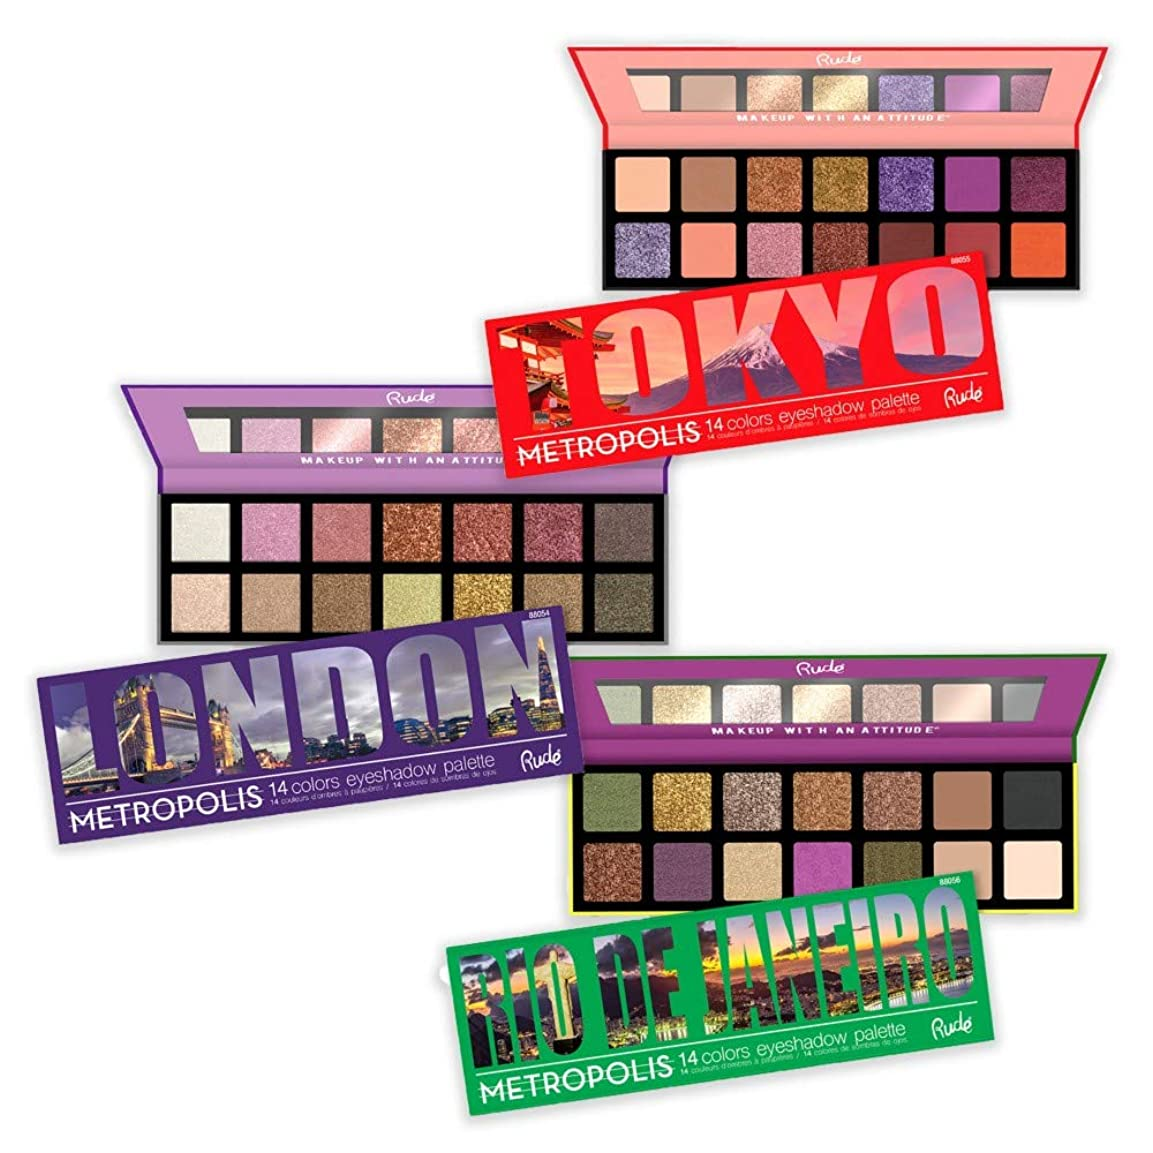 干渉襲撃ガイドライン(3 Pack) RUDE Metropolis 14 Color Eyeshadow Palette (BUNDLE) (並行輸入品)